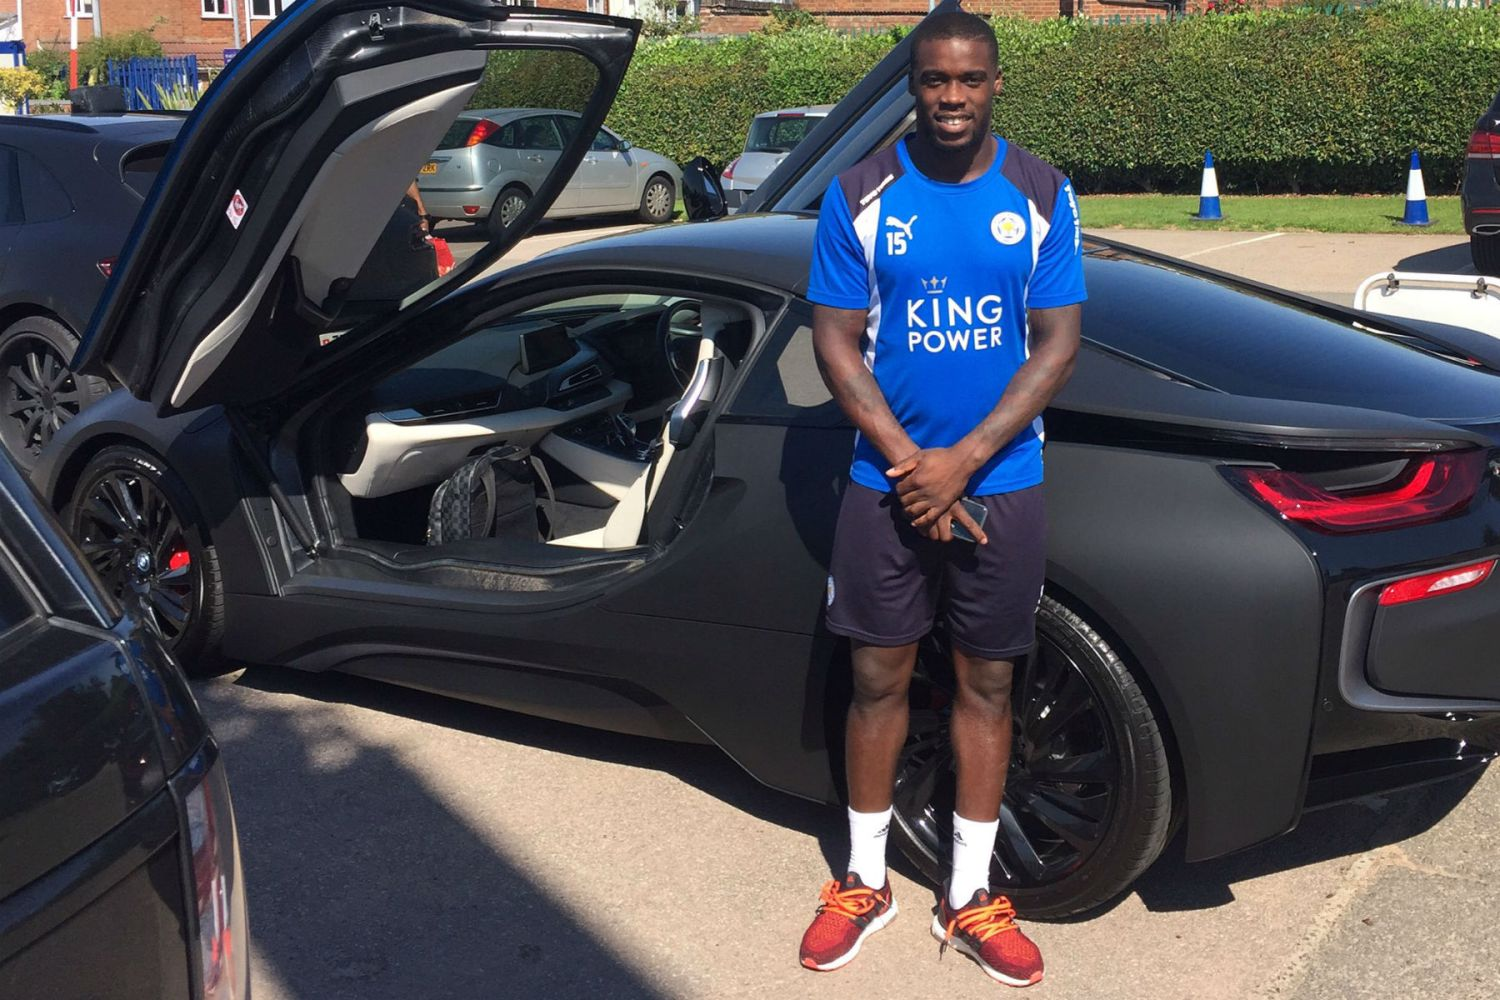 Leicester City footballers are getting their BMW i8s wrapped to avoid confusion